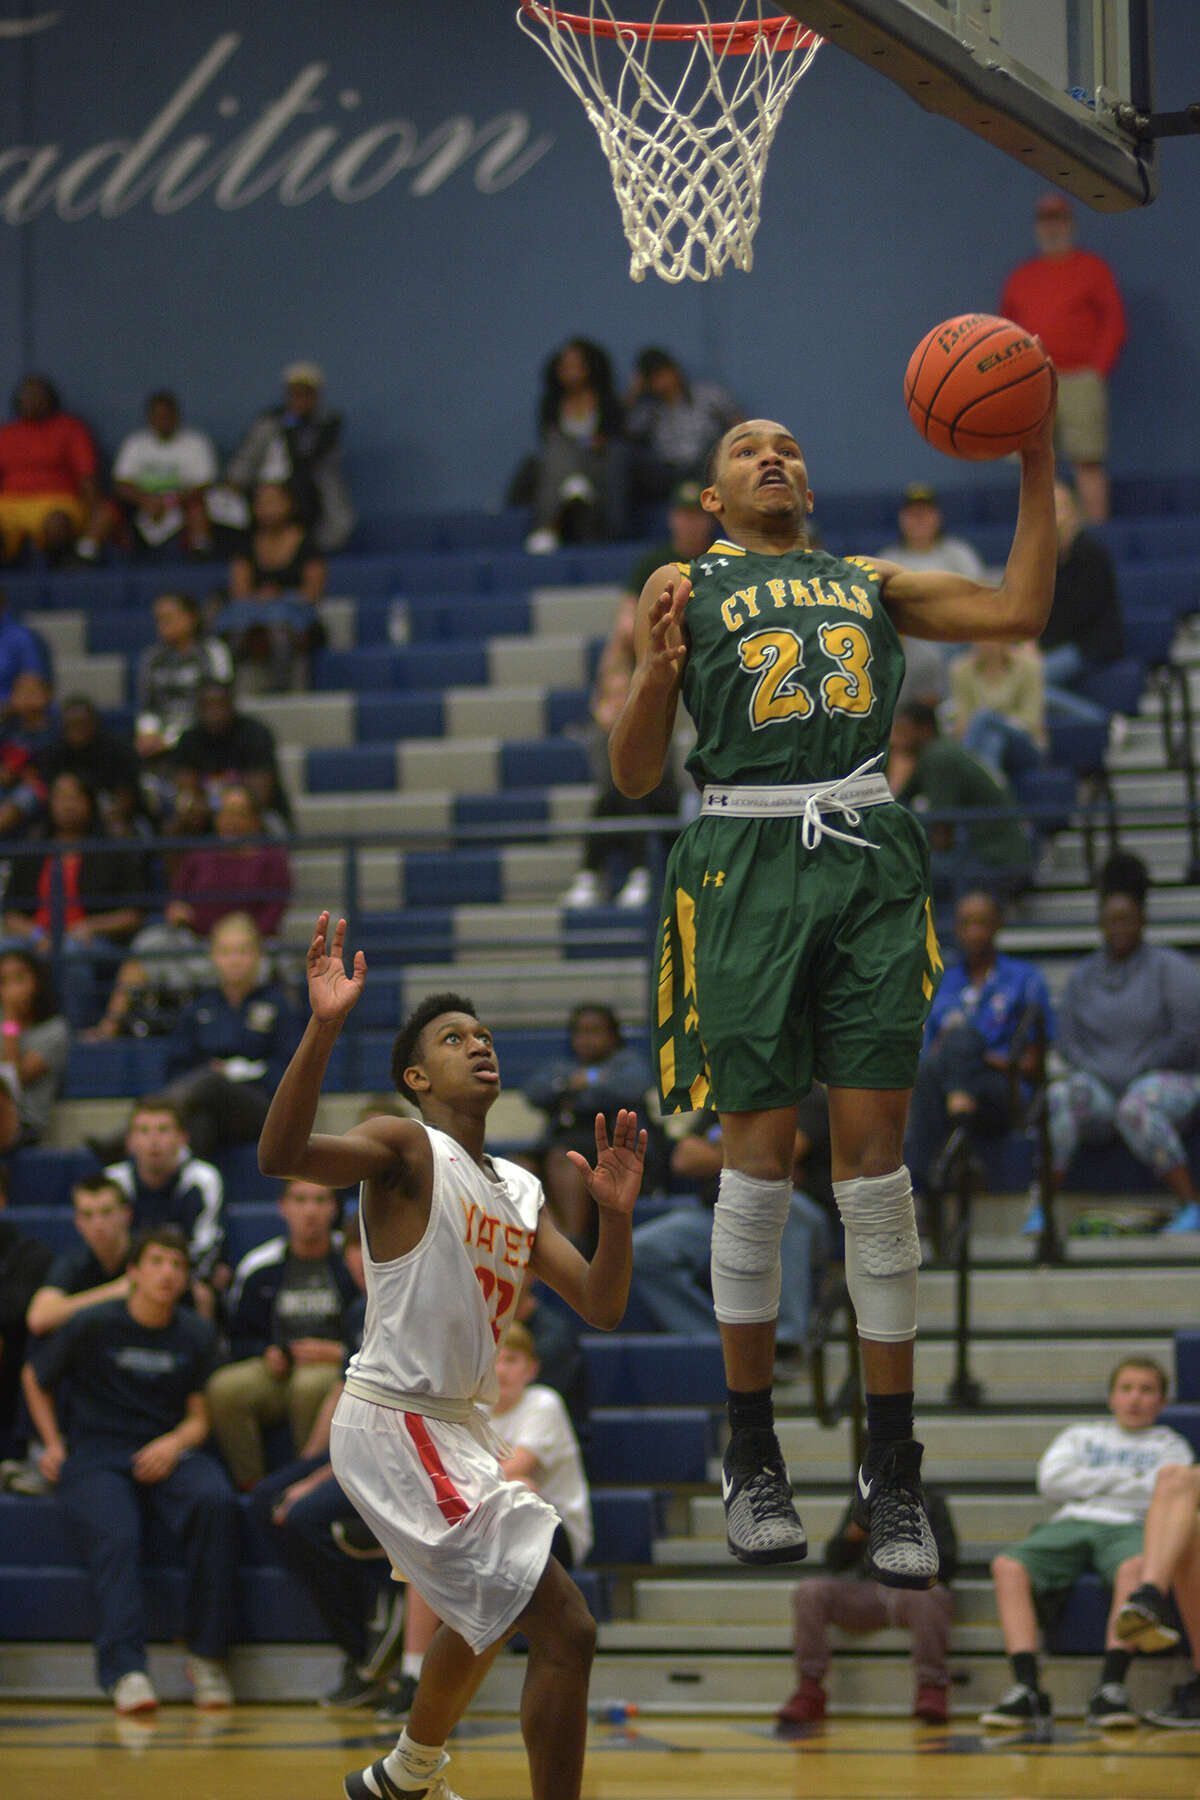 Cy Falls junior guard Nigel Hawkins delivers a raucous slam in Wednesday's matchup against Yates. Hawkins was named the All-Tournament MVP and was a vital factor in all four of the Eagles' tournament wins.